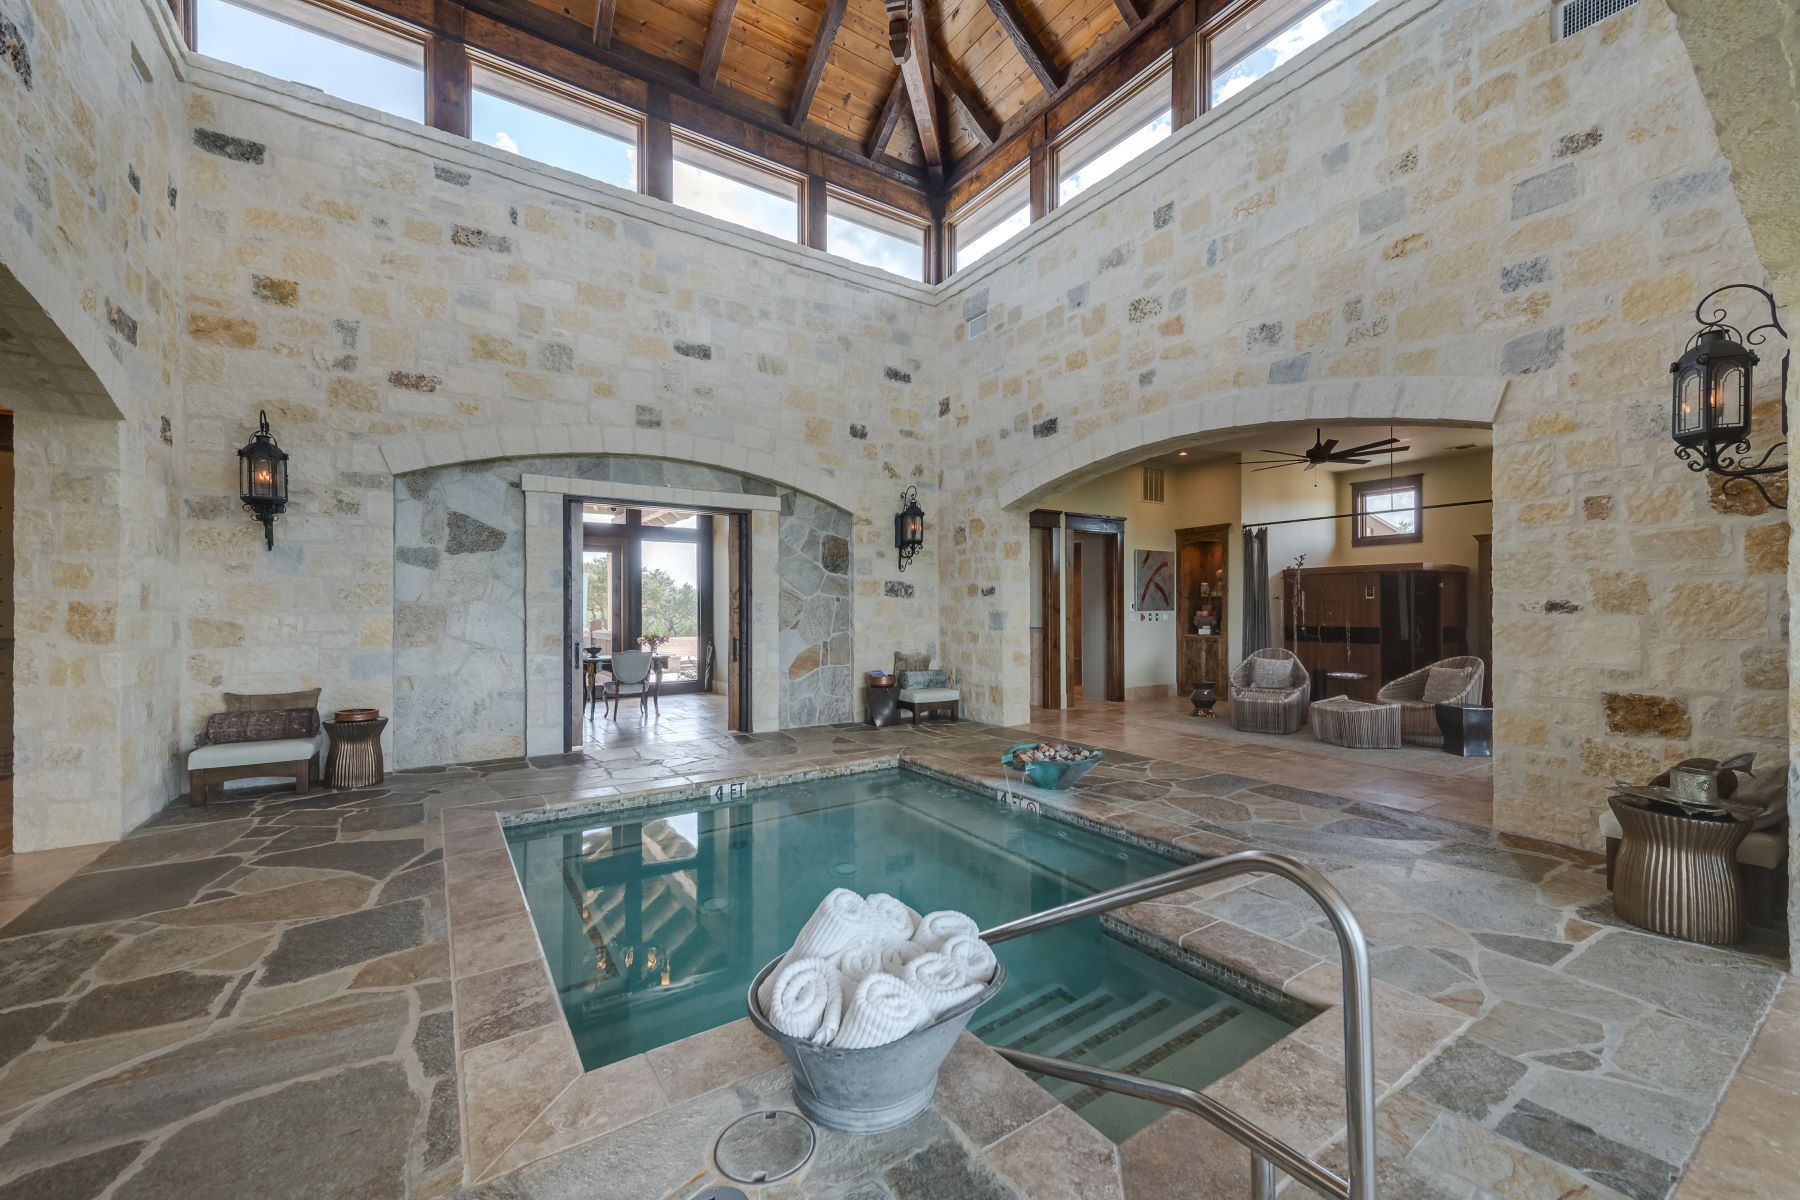 Single Family Homes for Sale at Willow Springs Ranch, Fredericksburg ISD, Gillespie County, Texas Platfoot Snow Road / Willow Springs Ranch Fredericksburg, Texas 78675 United States